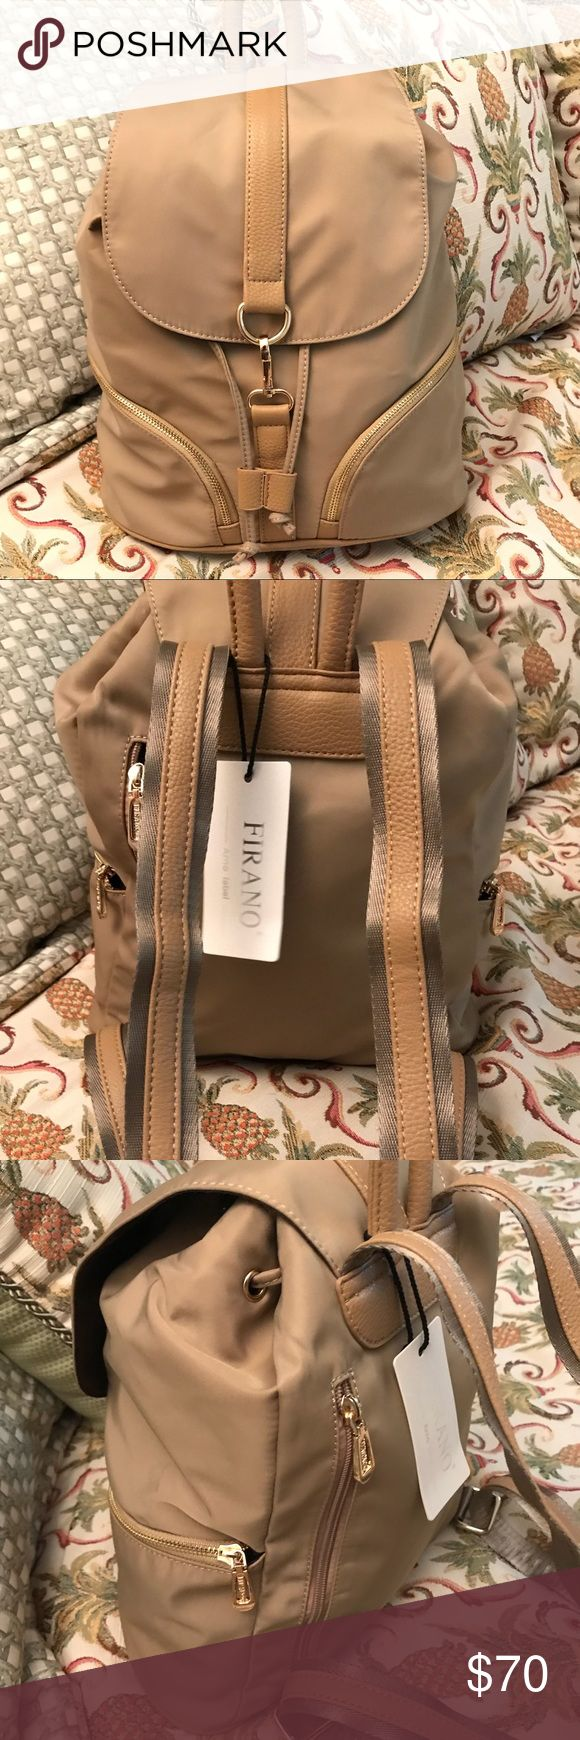 """Firano Beige Backpack with Draw String Clip Bag Firano Beige Backpack with Draw String Clip Bag NWT No. A301122 2 side pockets 1 interior zip pocket Measurements: L 13.5"""", H 13"""",  W 5.5""""  Adjustable straps: 25"""" to 34"""" Purchased in Japan Firano Bags Backpacks"""